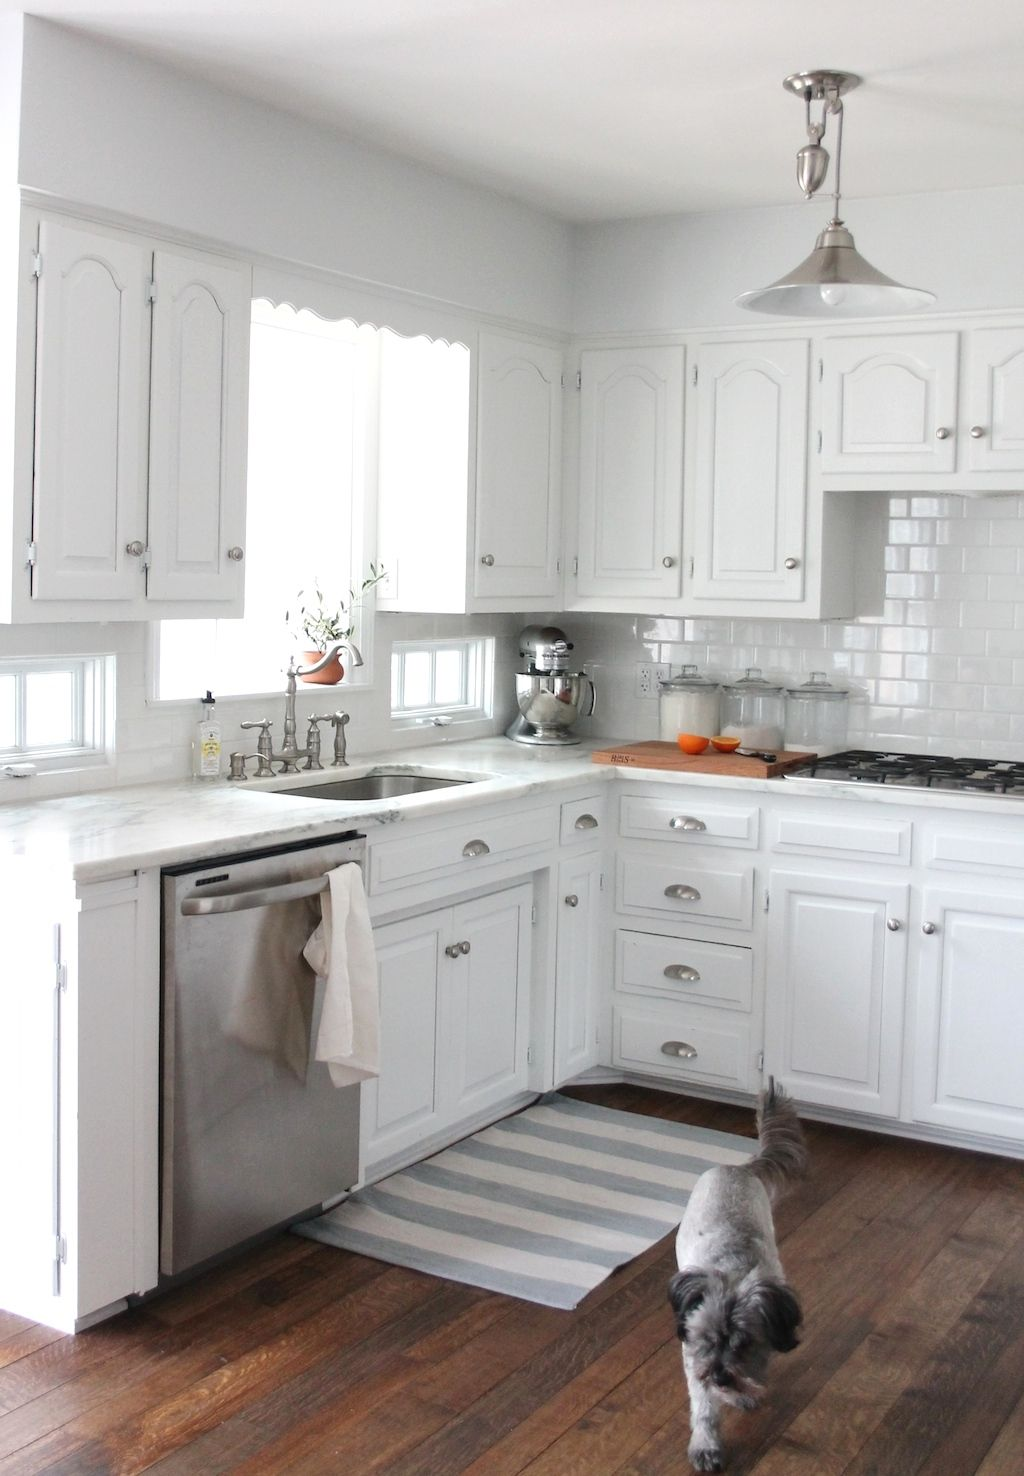 Small Kitchen With White Cabinets And Stainless Steel Appliances